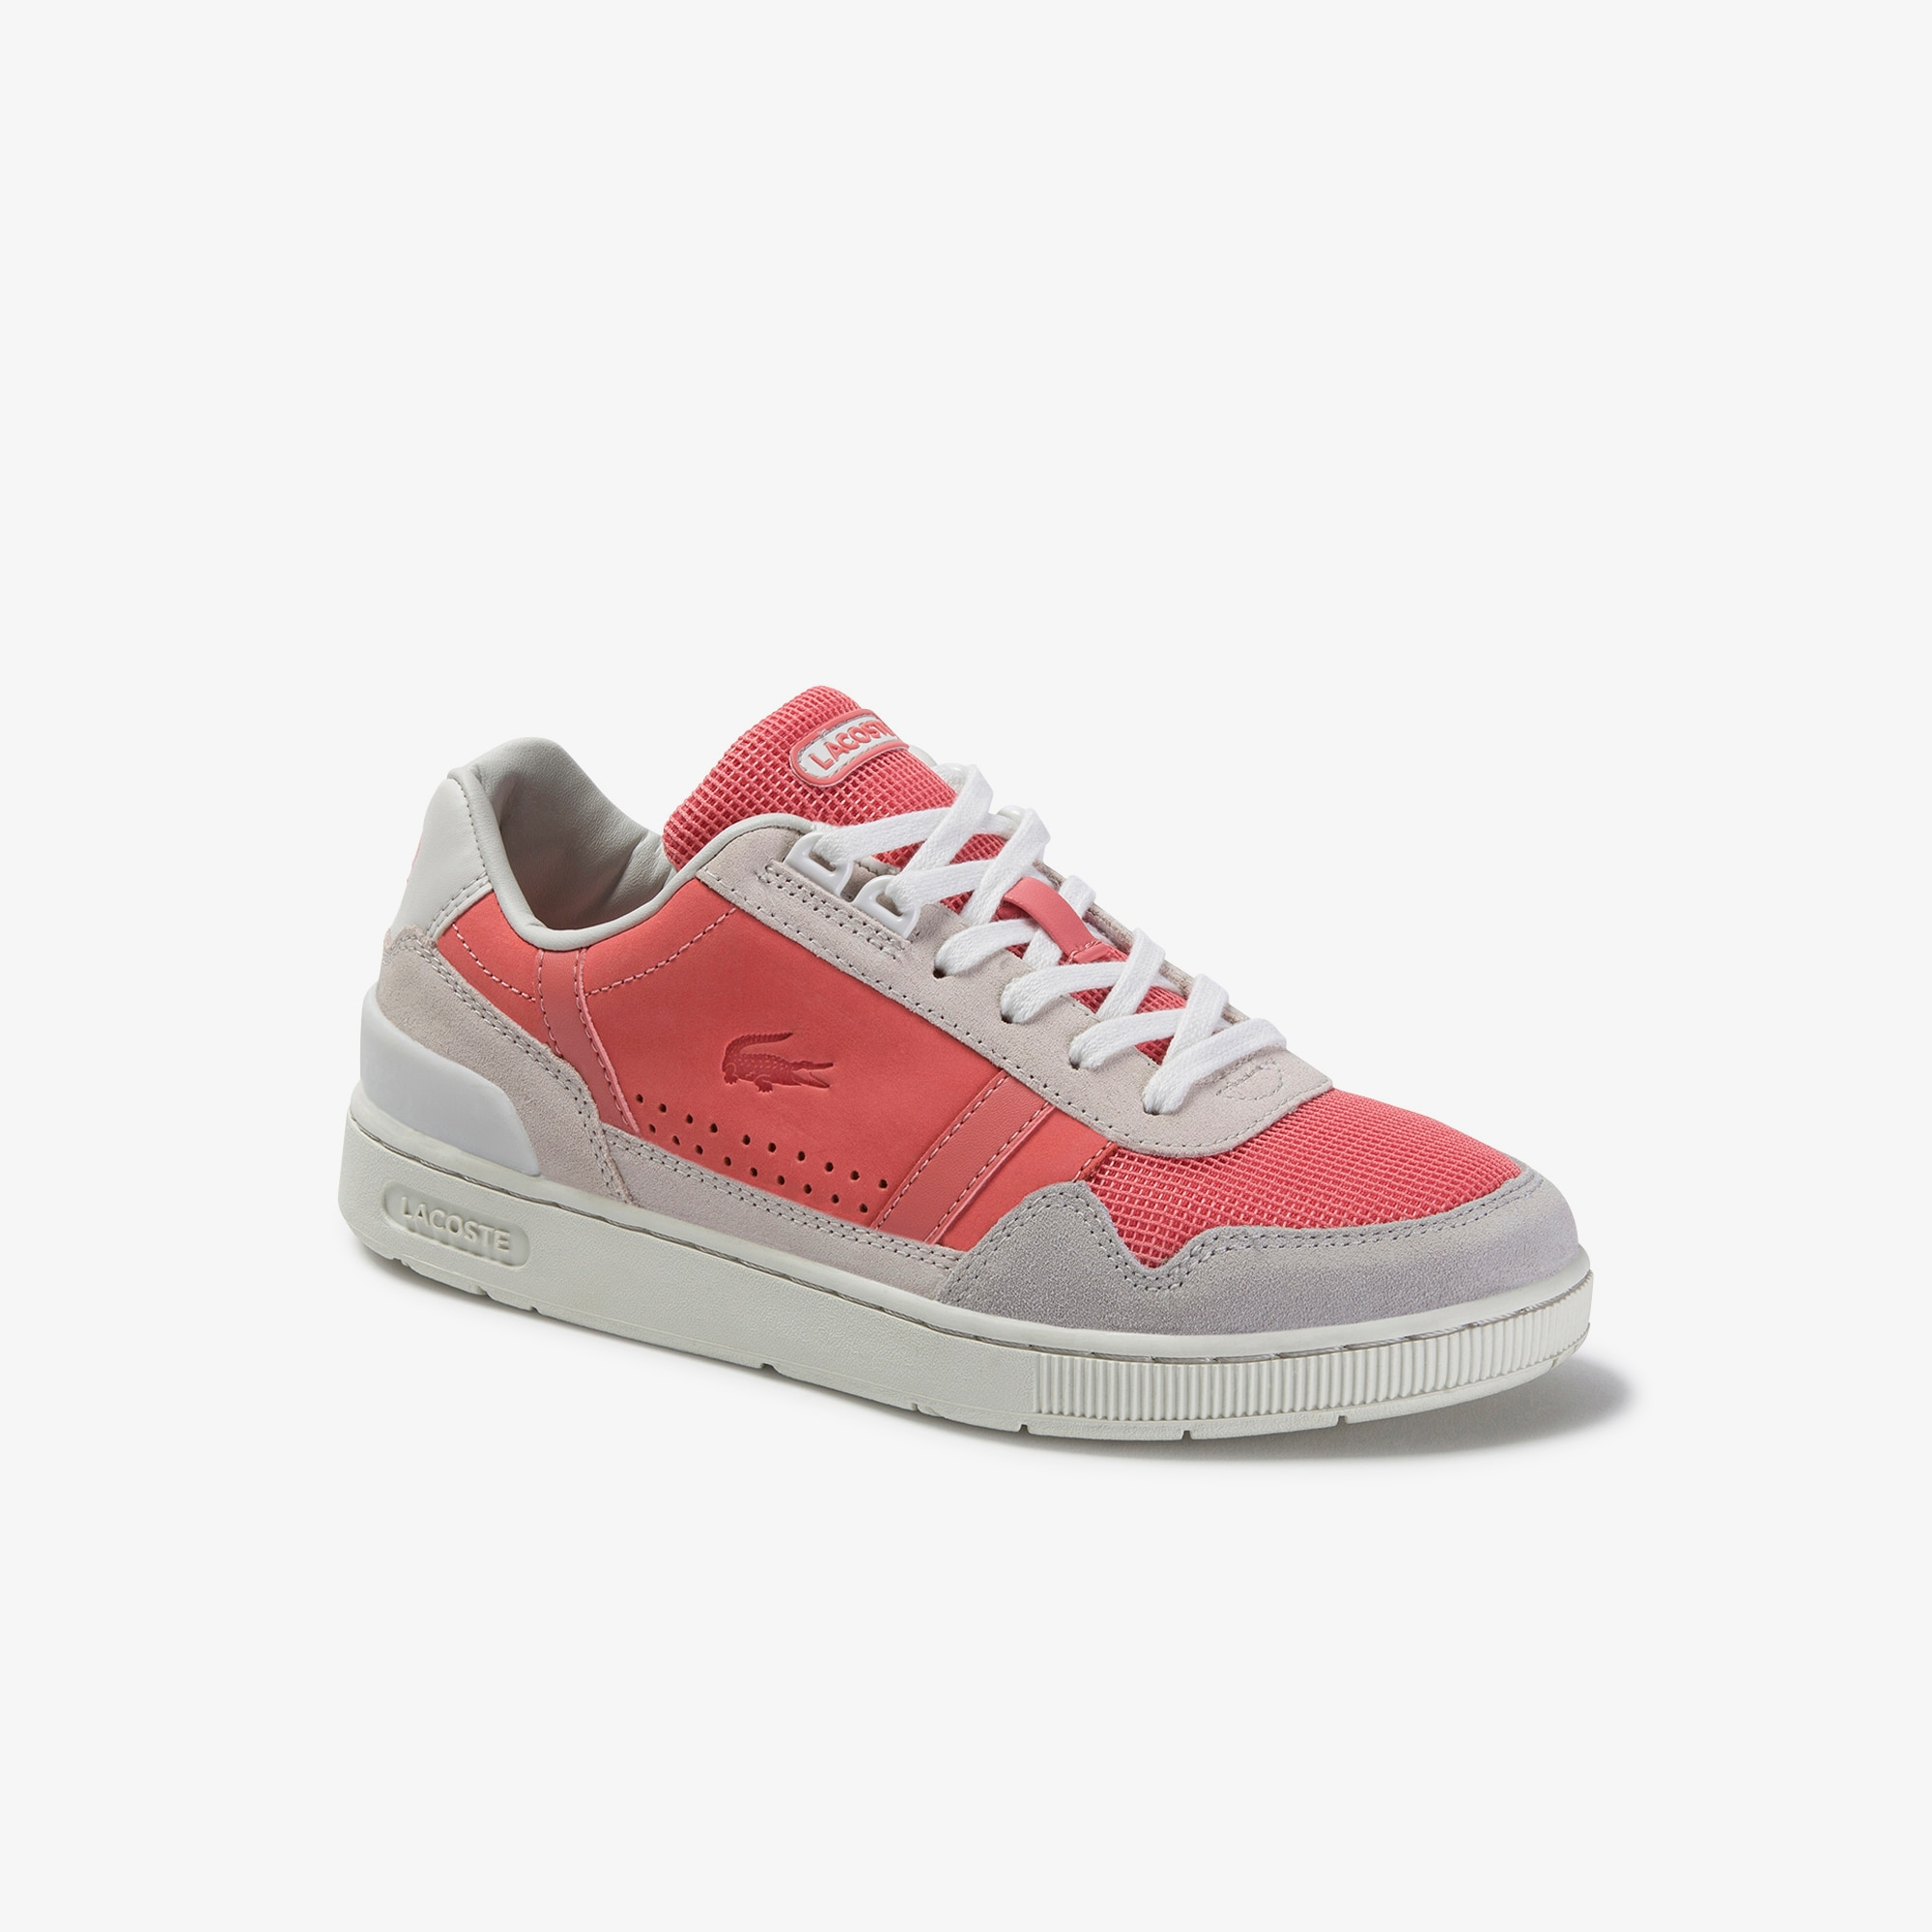 Shoes \u0026 Sneakers for Men, Women, and